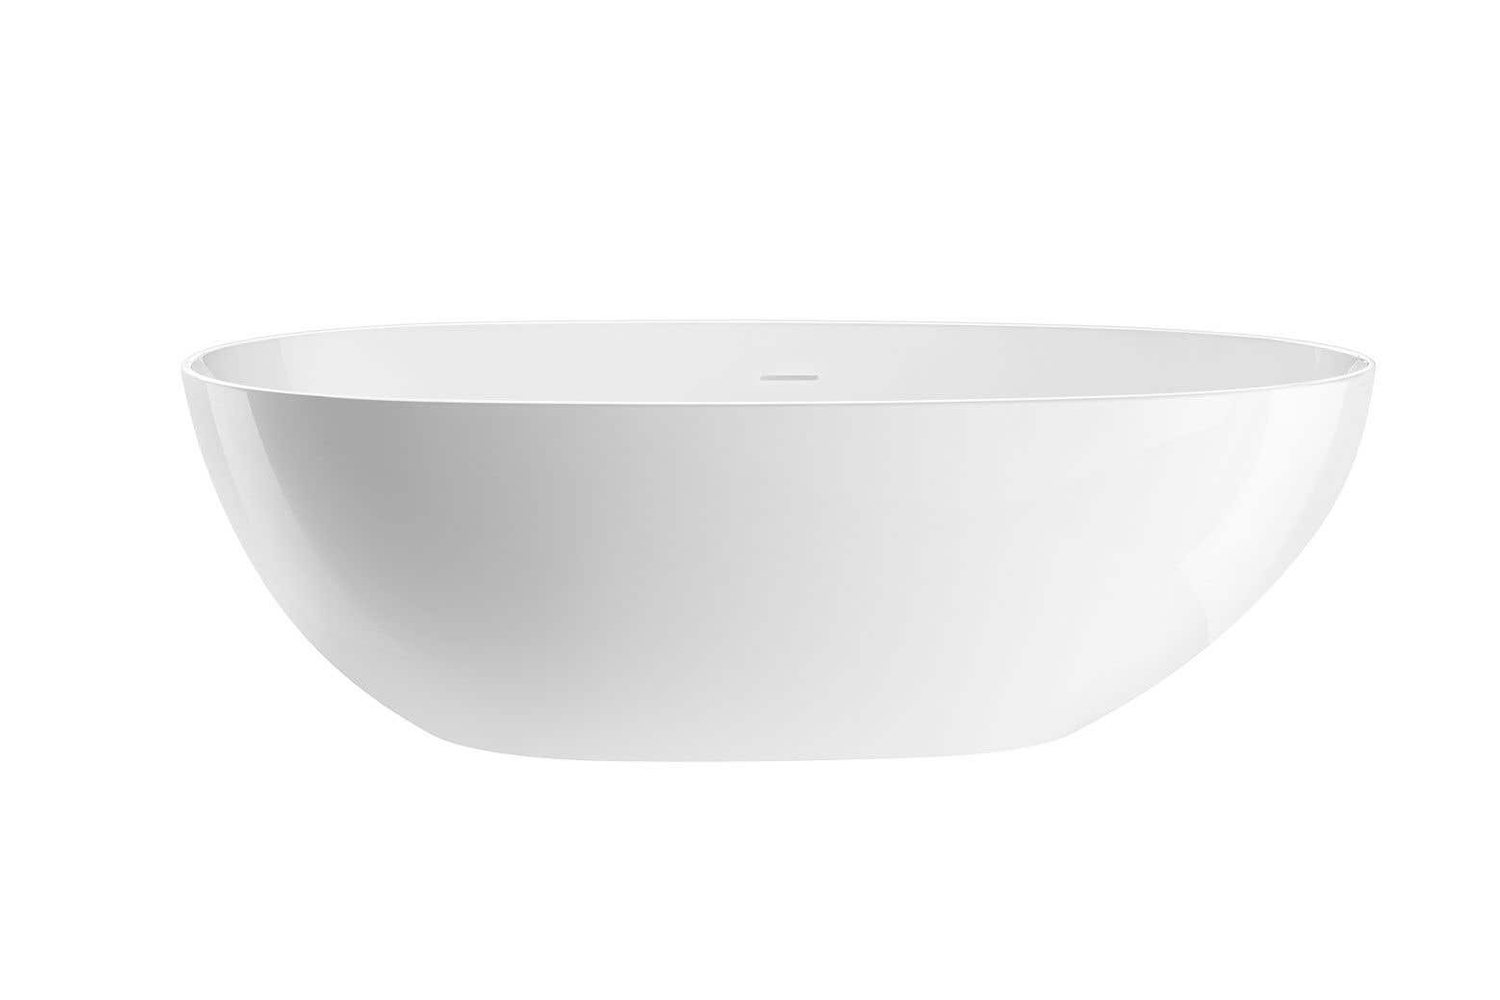 the ainsley 7\1 inch freestanding double end tub by randolph morris is \$\1,\19 16